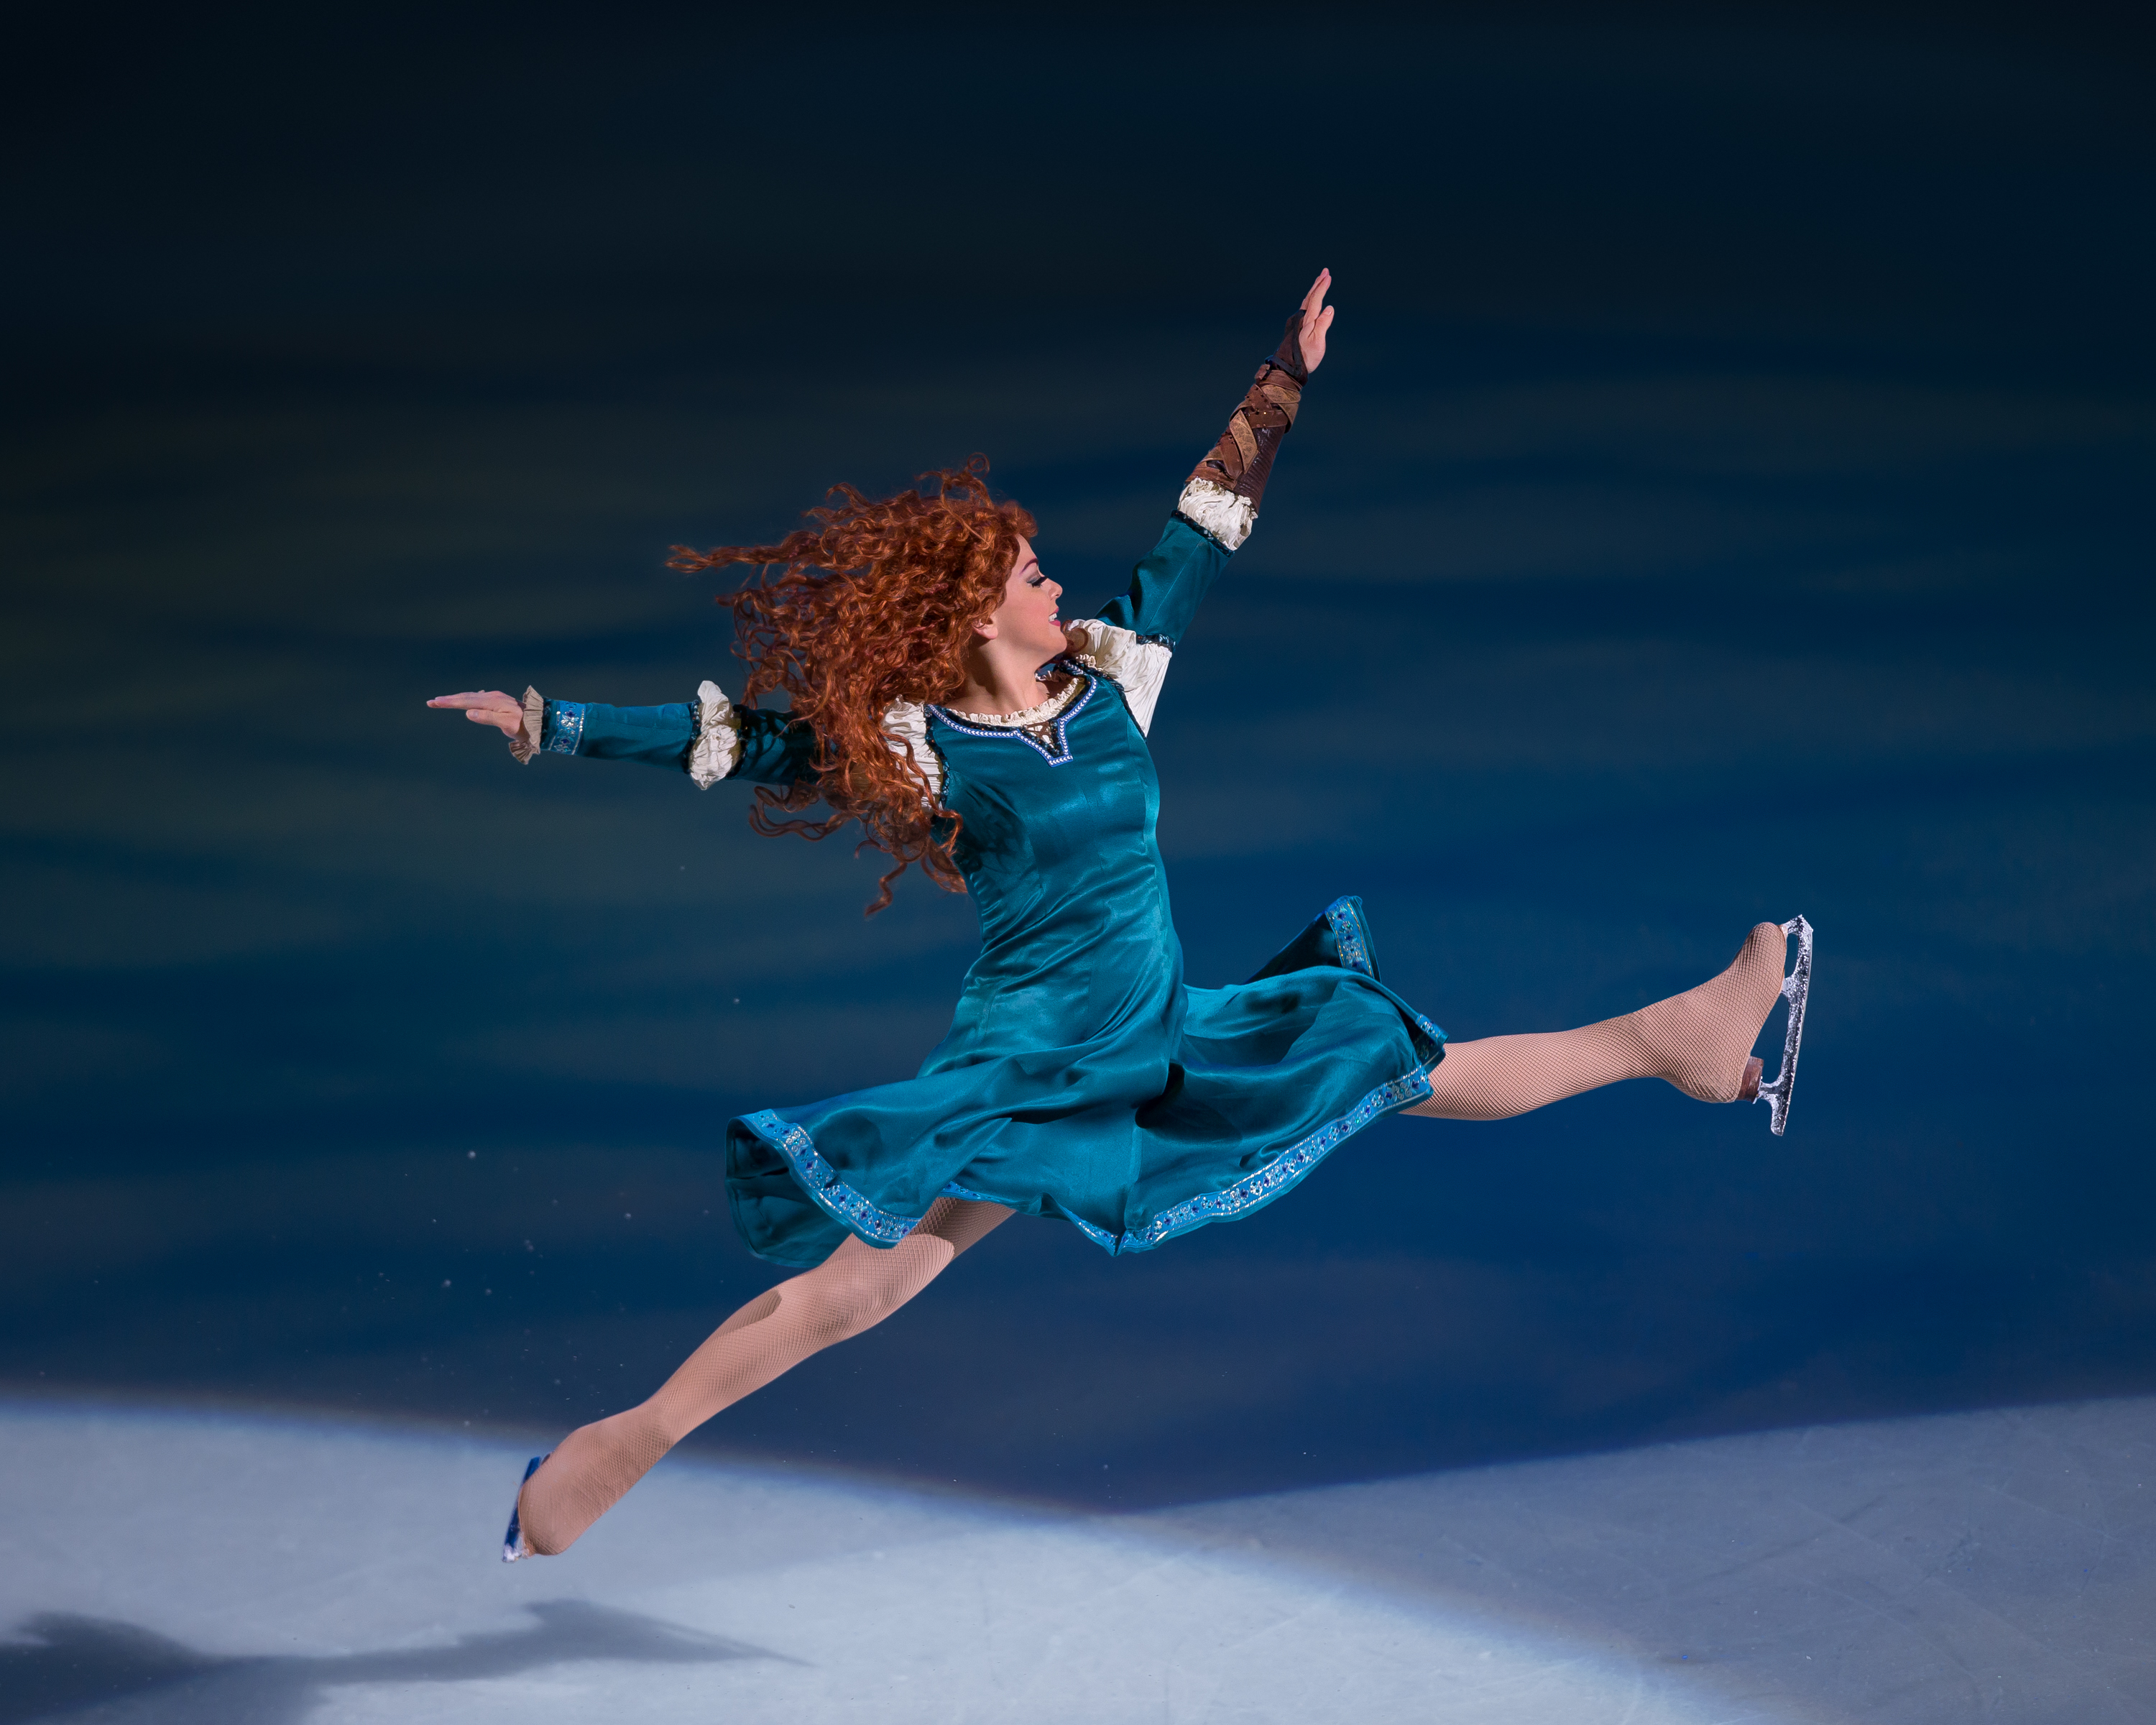 Princess Merida leaping on ice